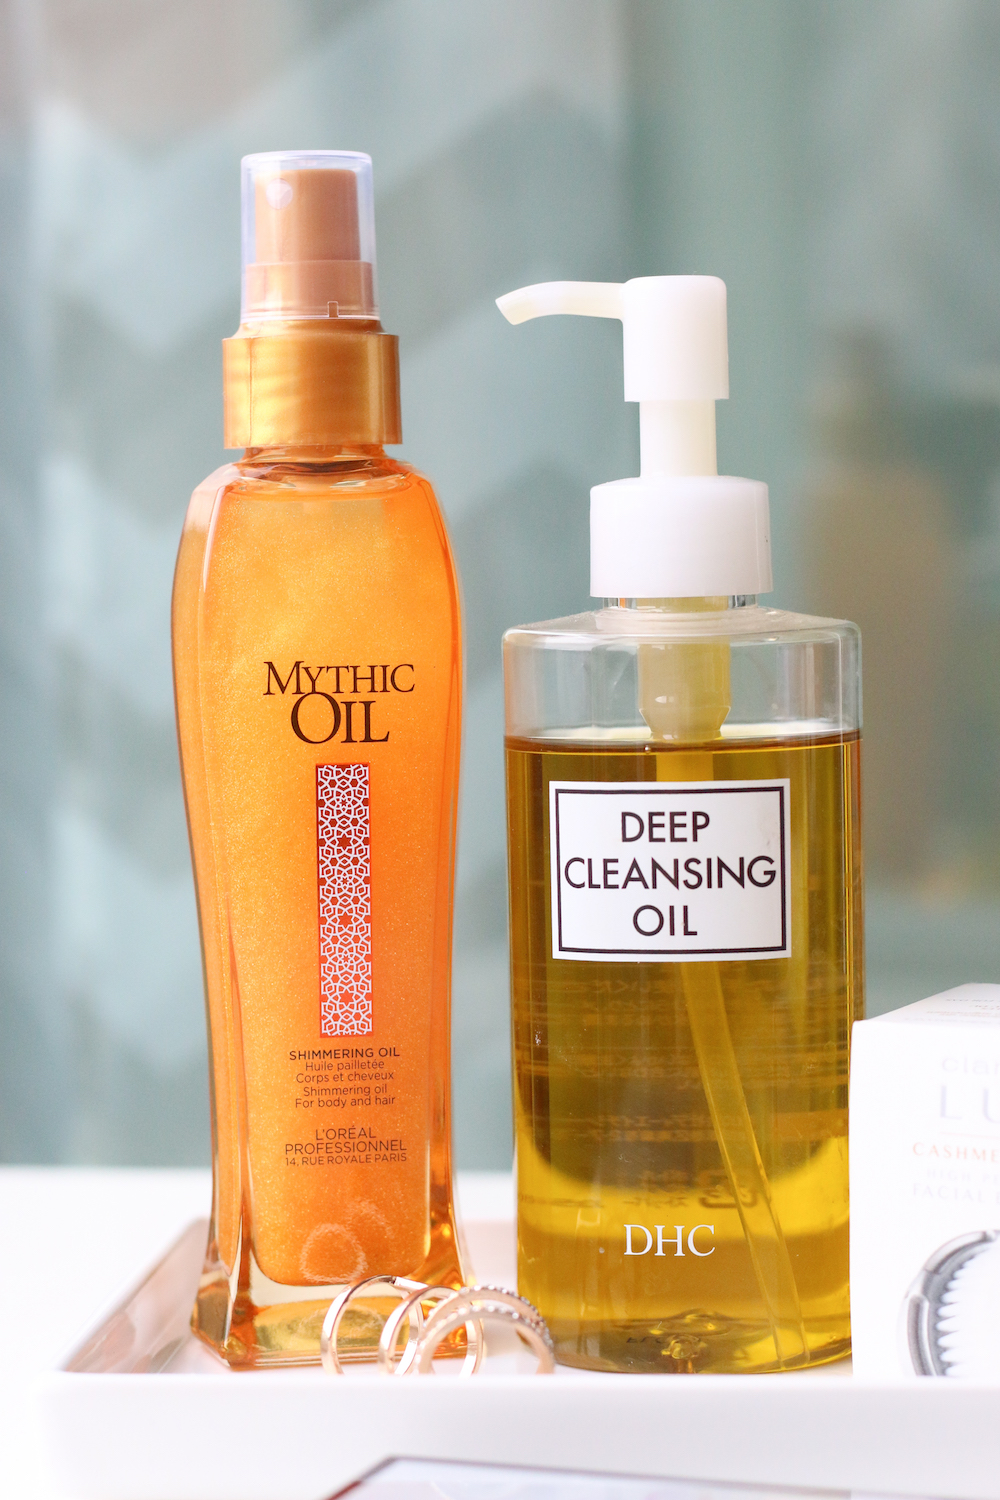 mythic-oil-loreal-deep-cleansing-oil-dhc